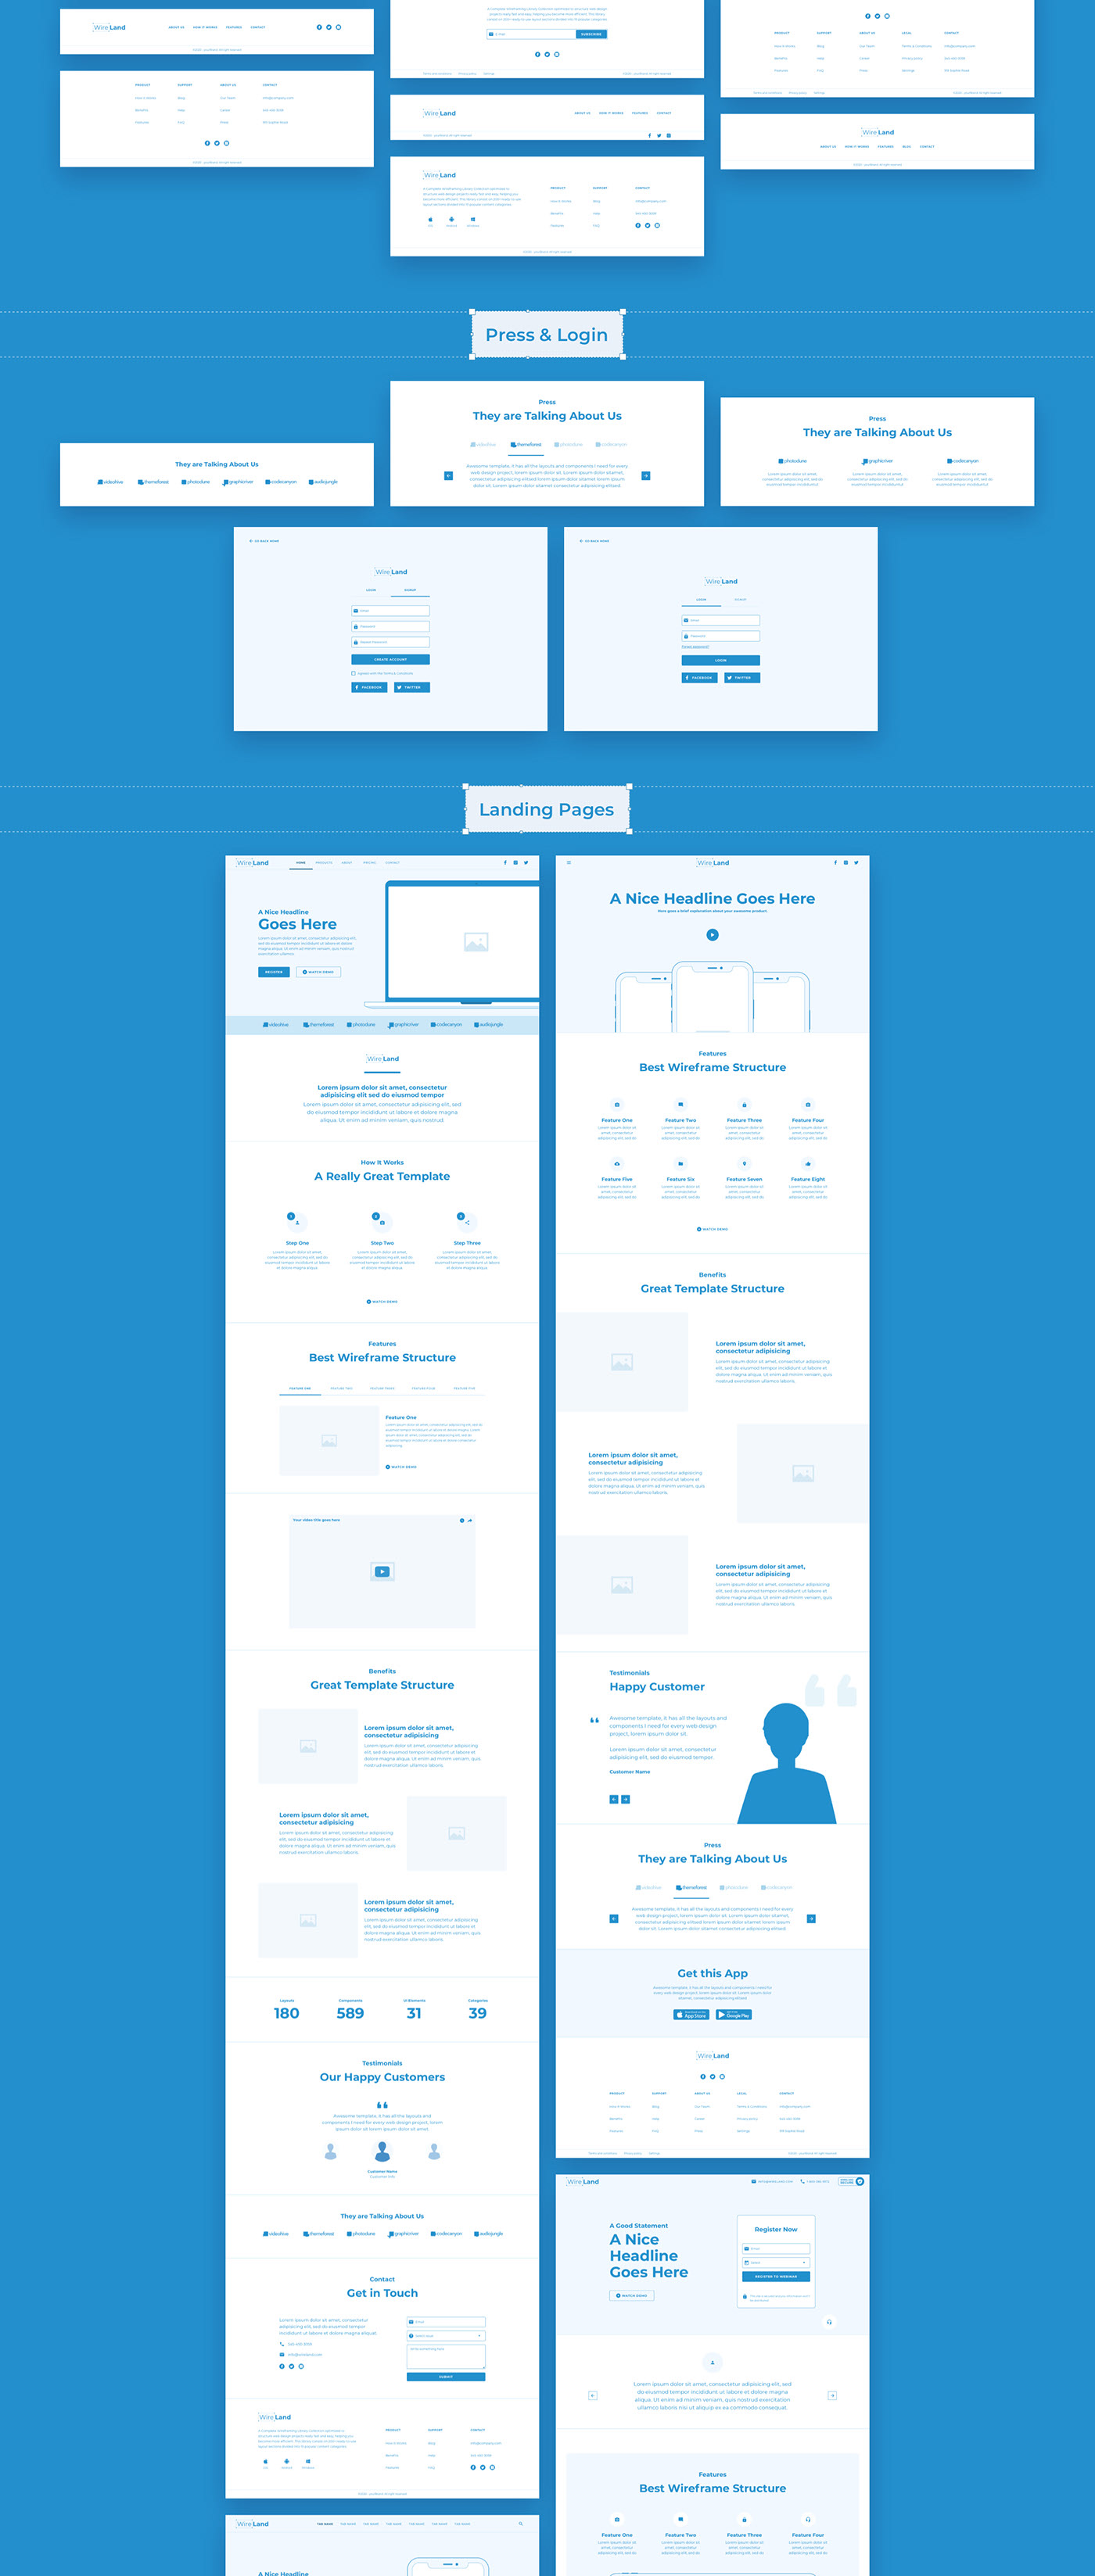 8cbaeb57728315.5f82276d39a91 - Wireland - Wireframe Library for Web Design Projects - Sketch Template